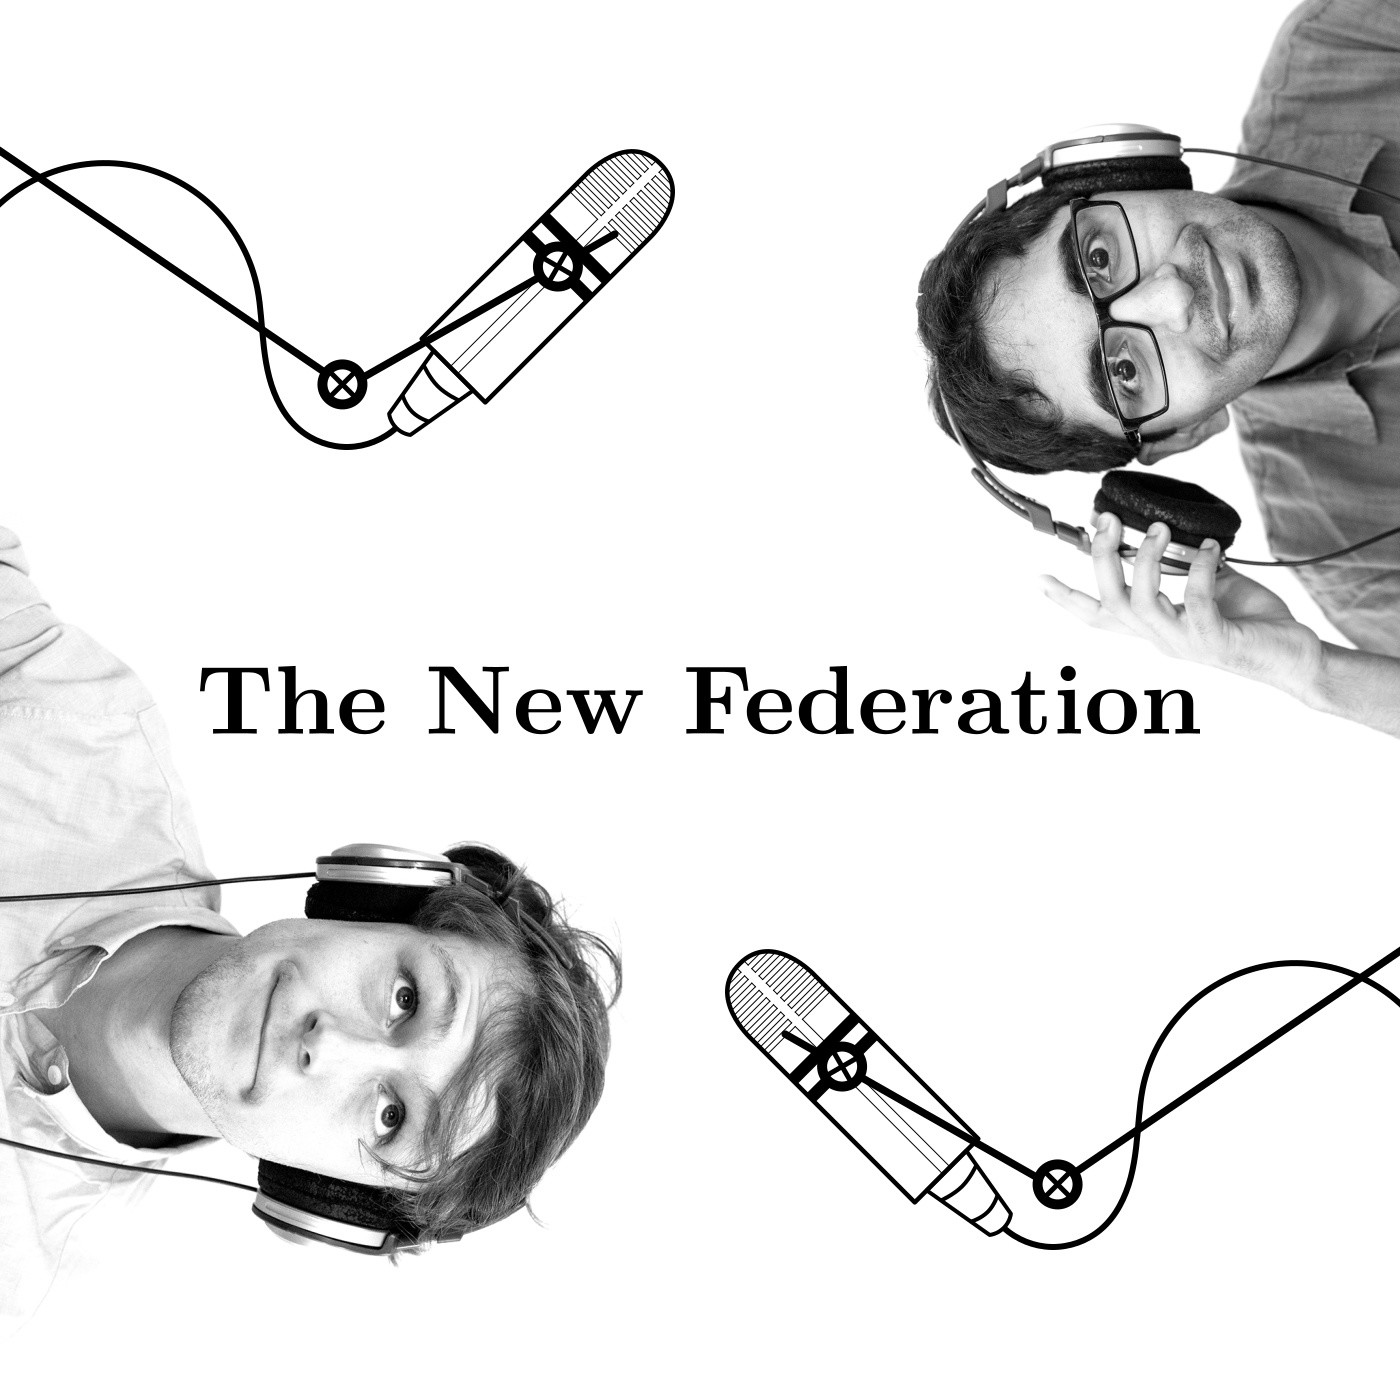 The New Federation